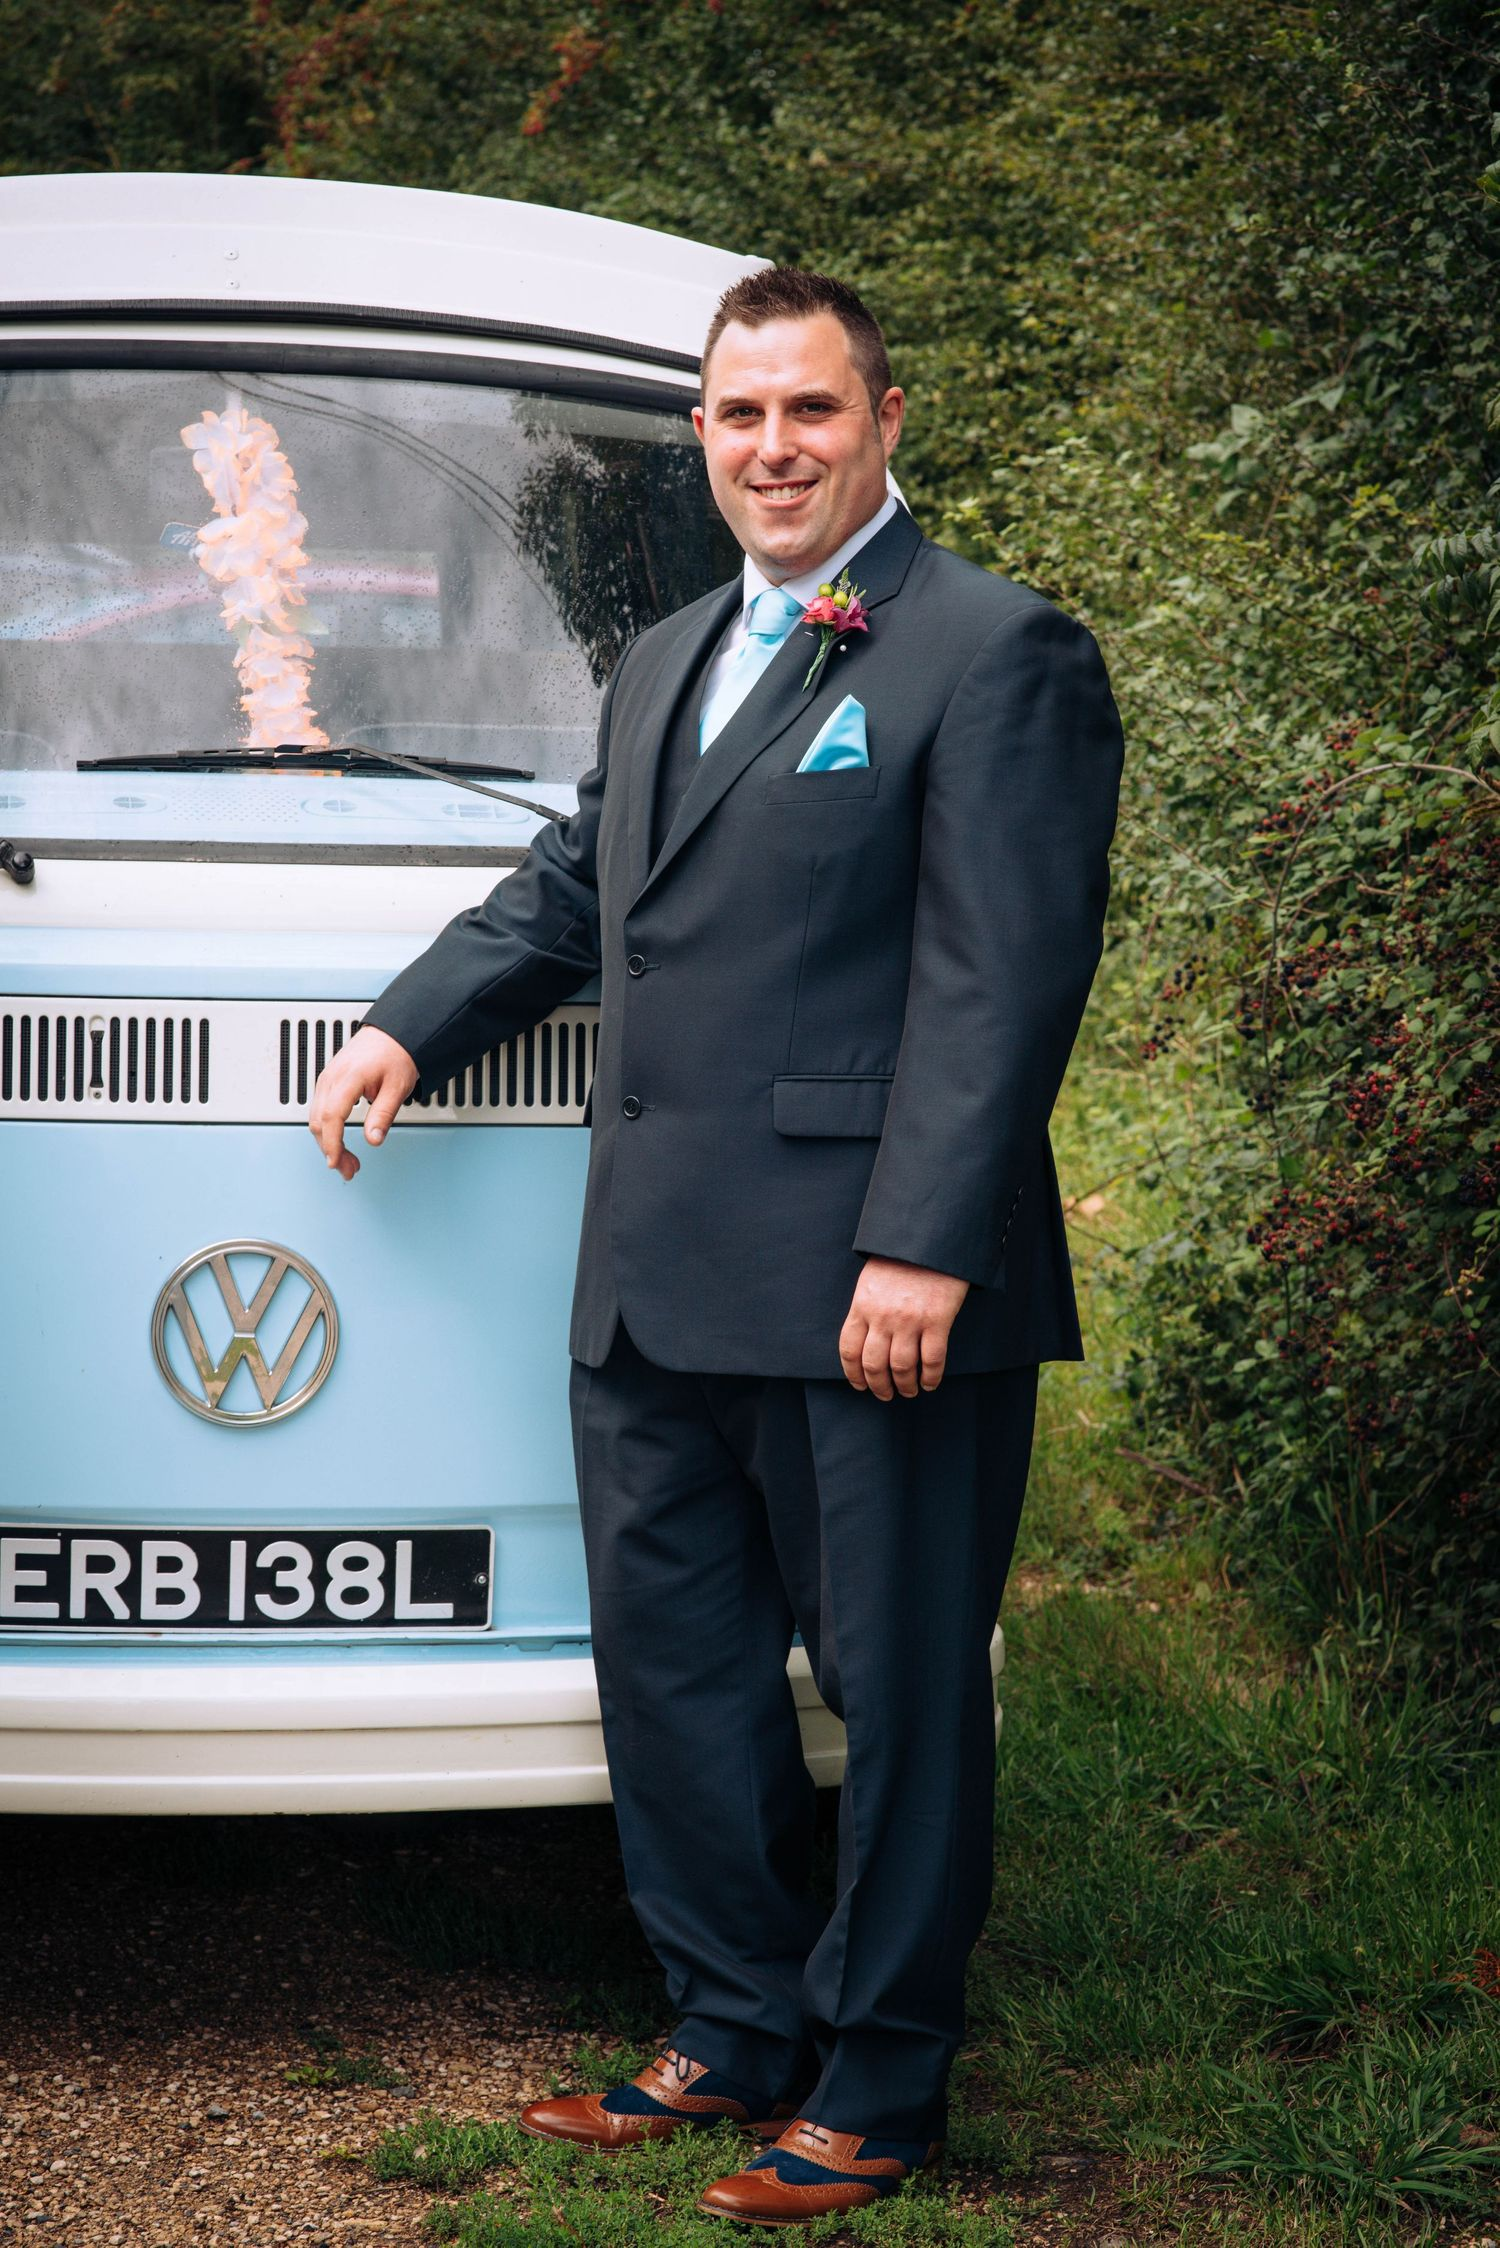 Elmore wedding by Zara Davis Photography, Gloucestershire Groom with the VW van